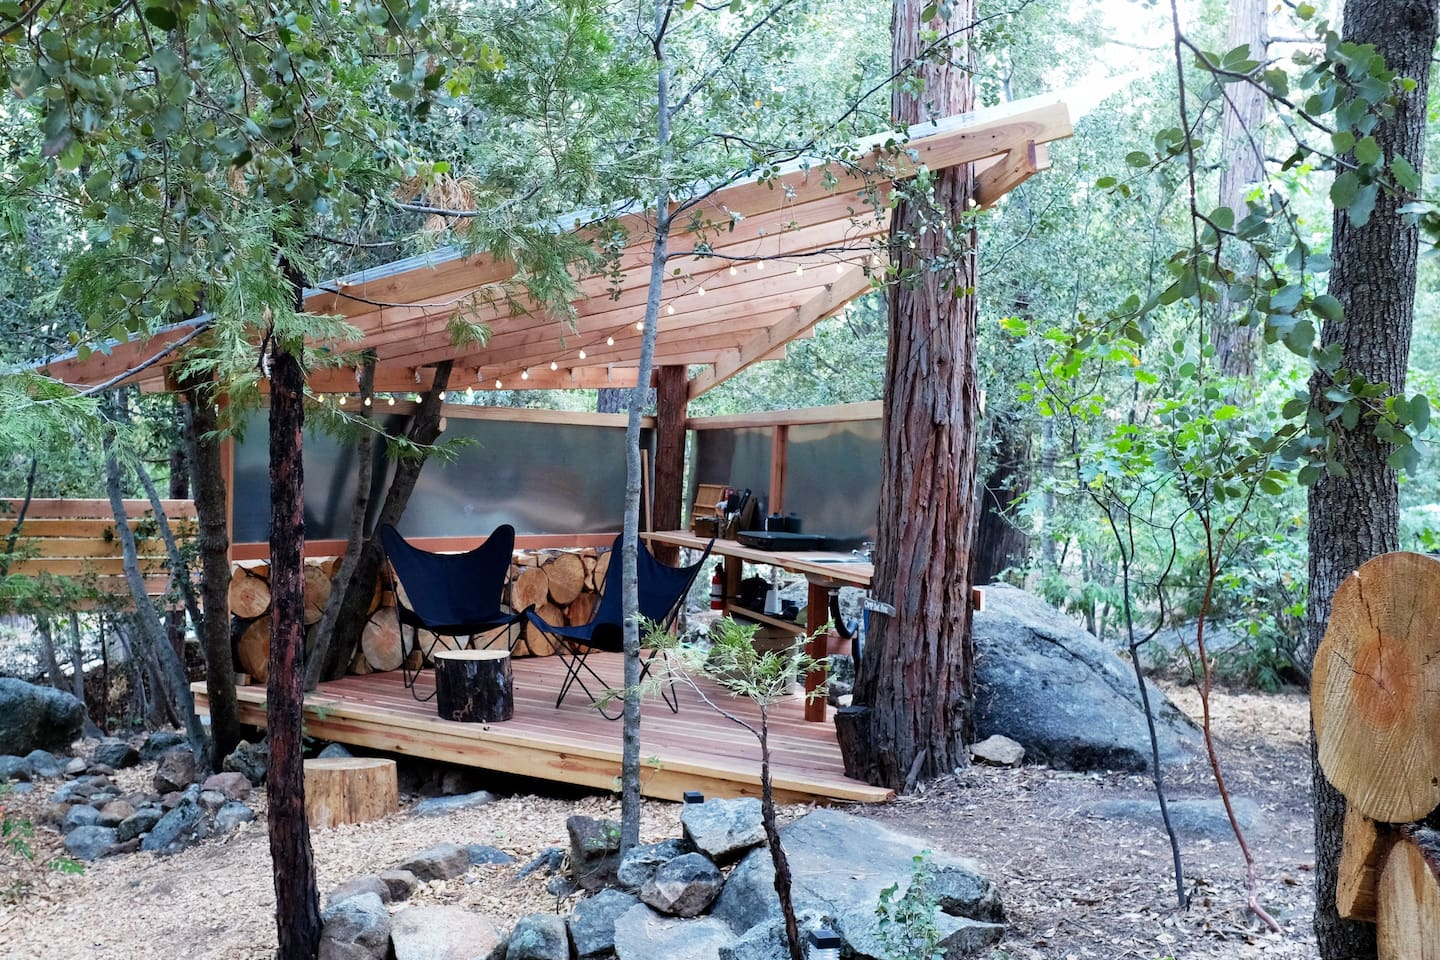 Welcome to Camp Owl Pine - Hang/kitchen deck (vintage butterfly chairs, camp stove, sink, Yeti)